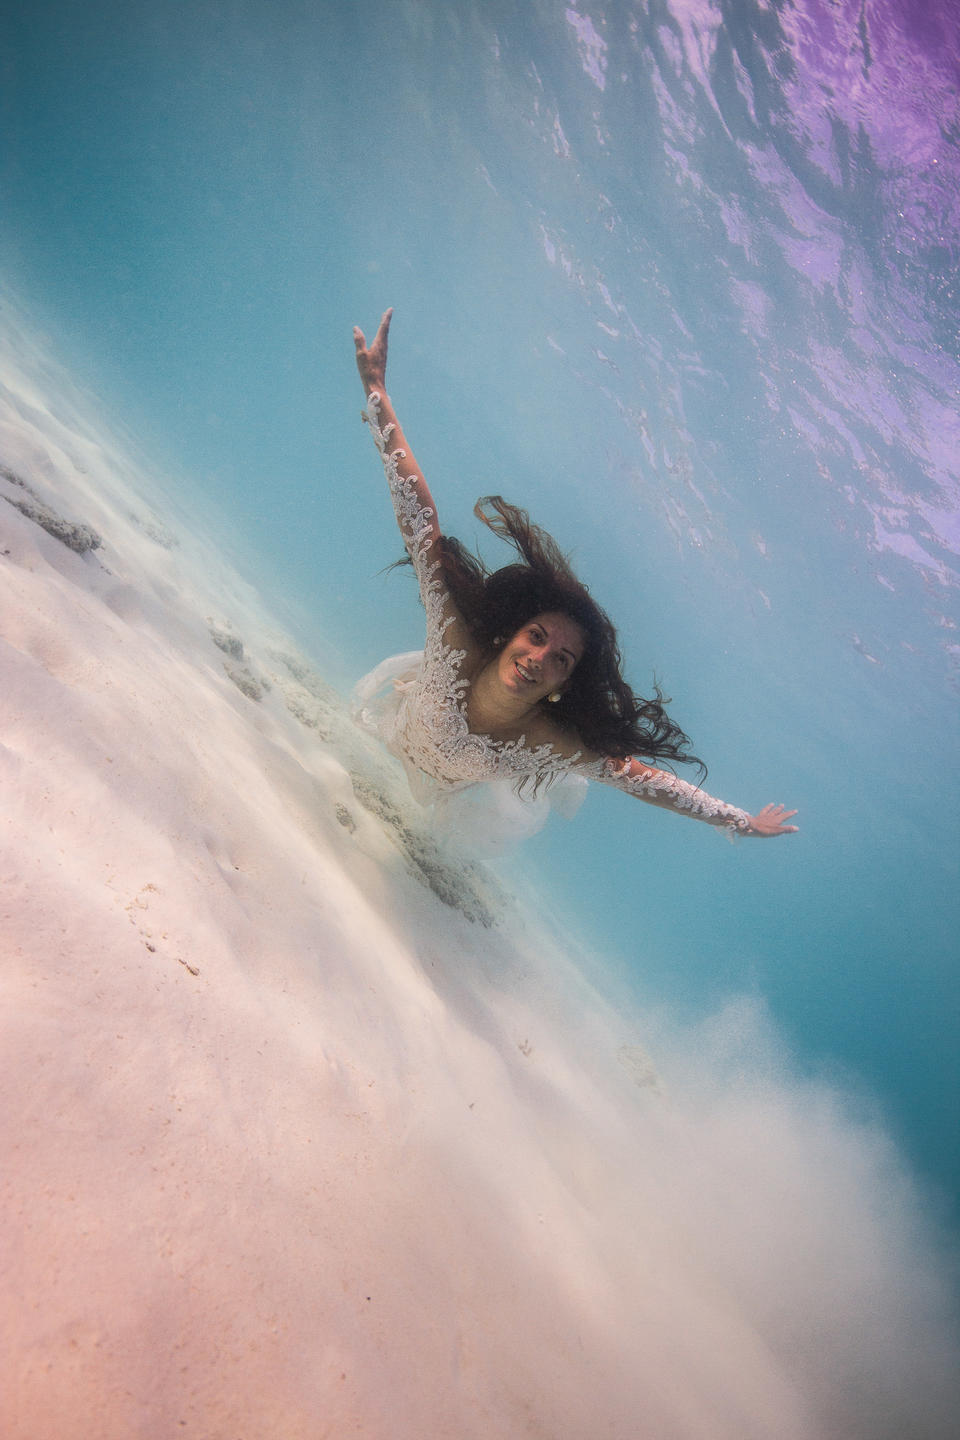 A bride free diving in her wedding dress for some extra special wedding photos